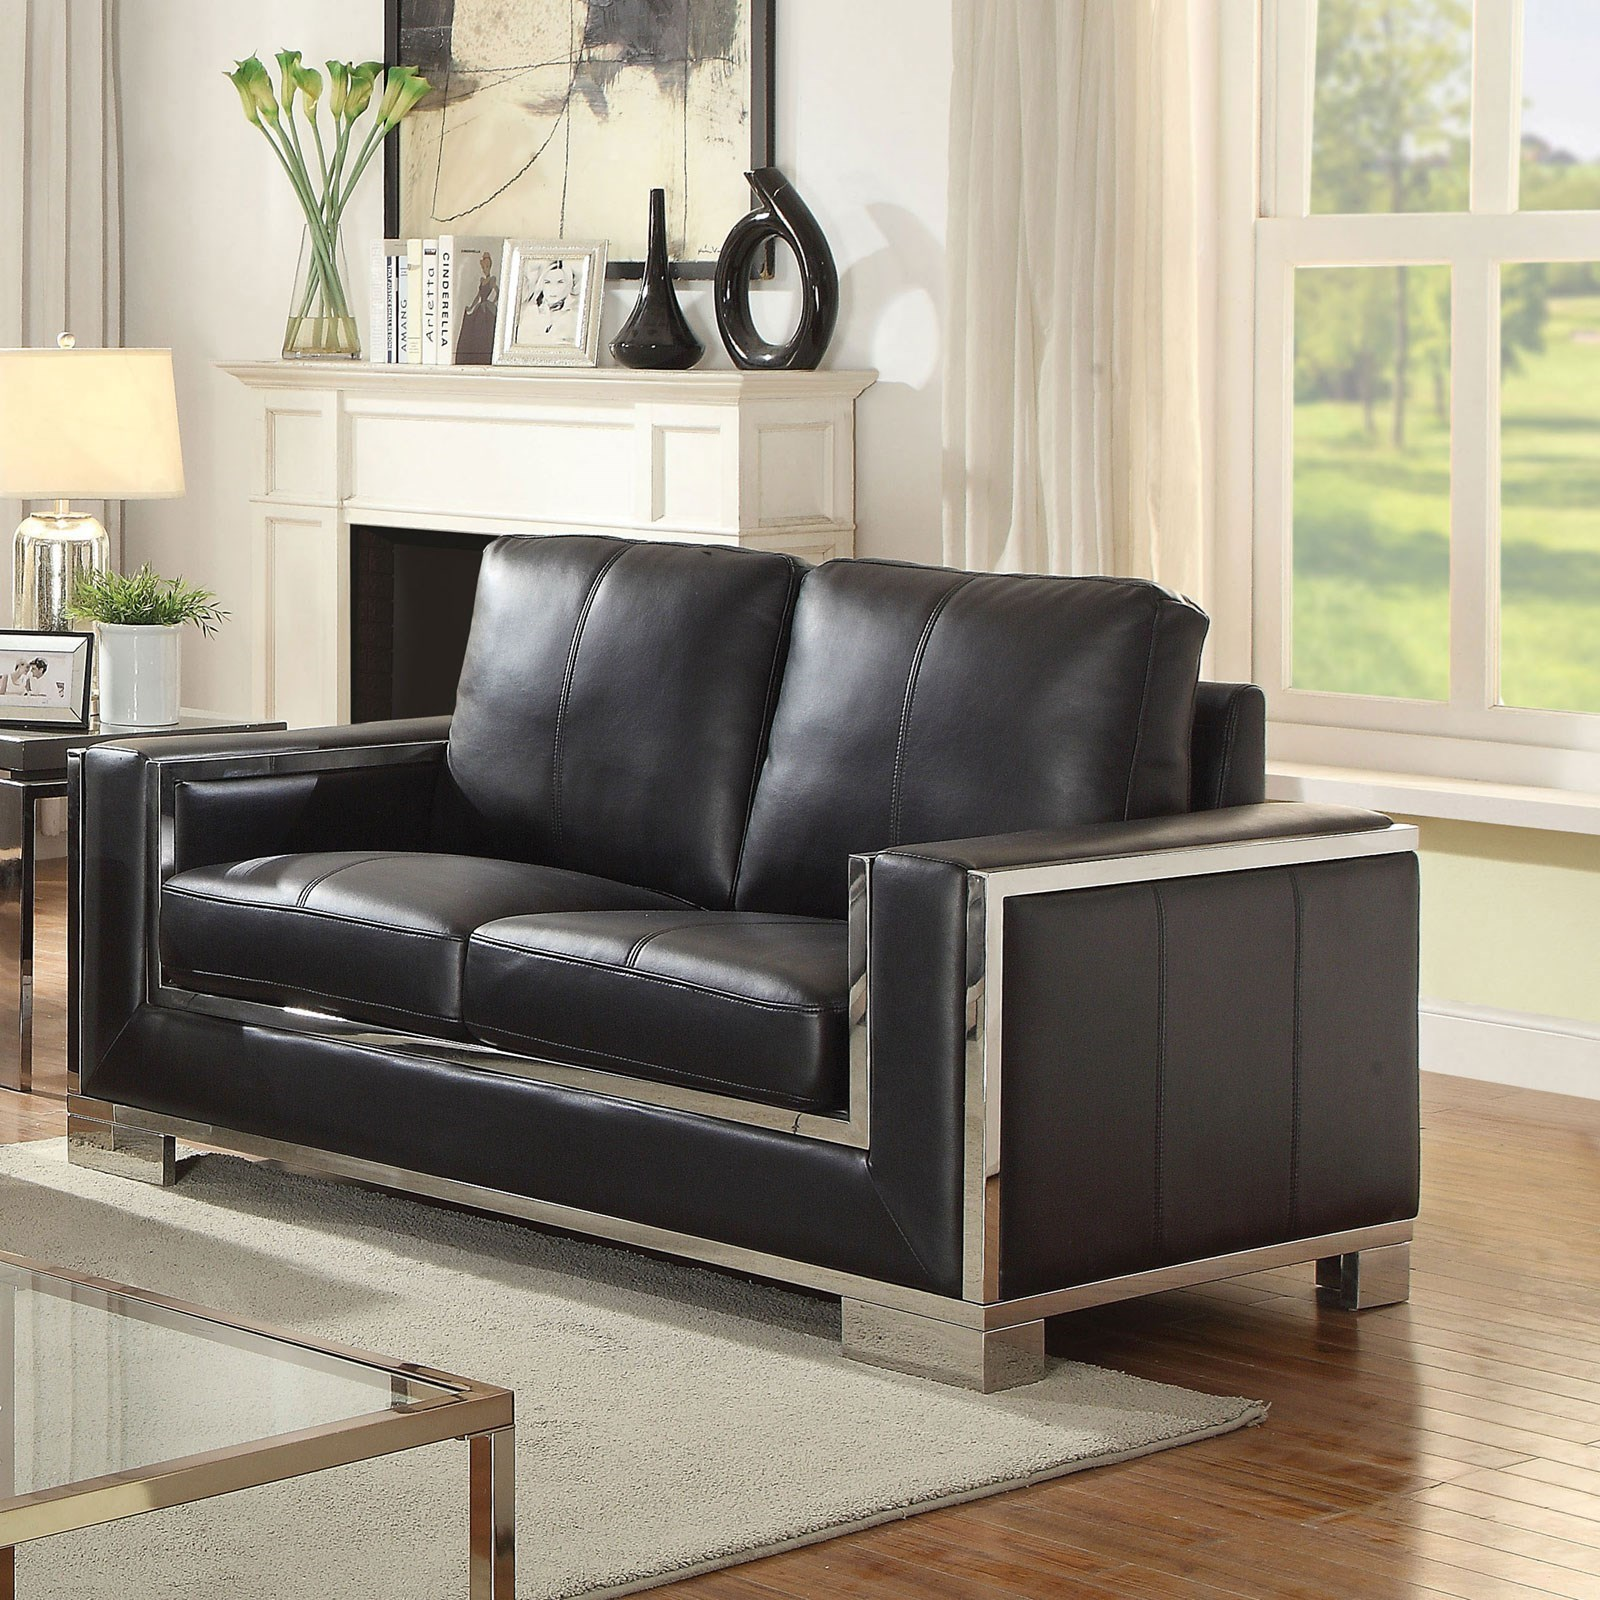 Furniture Of America Monika Contemporary Love Seat With